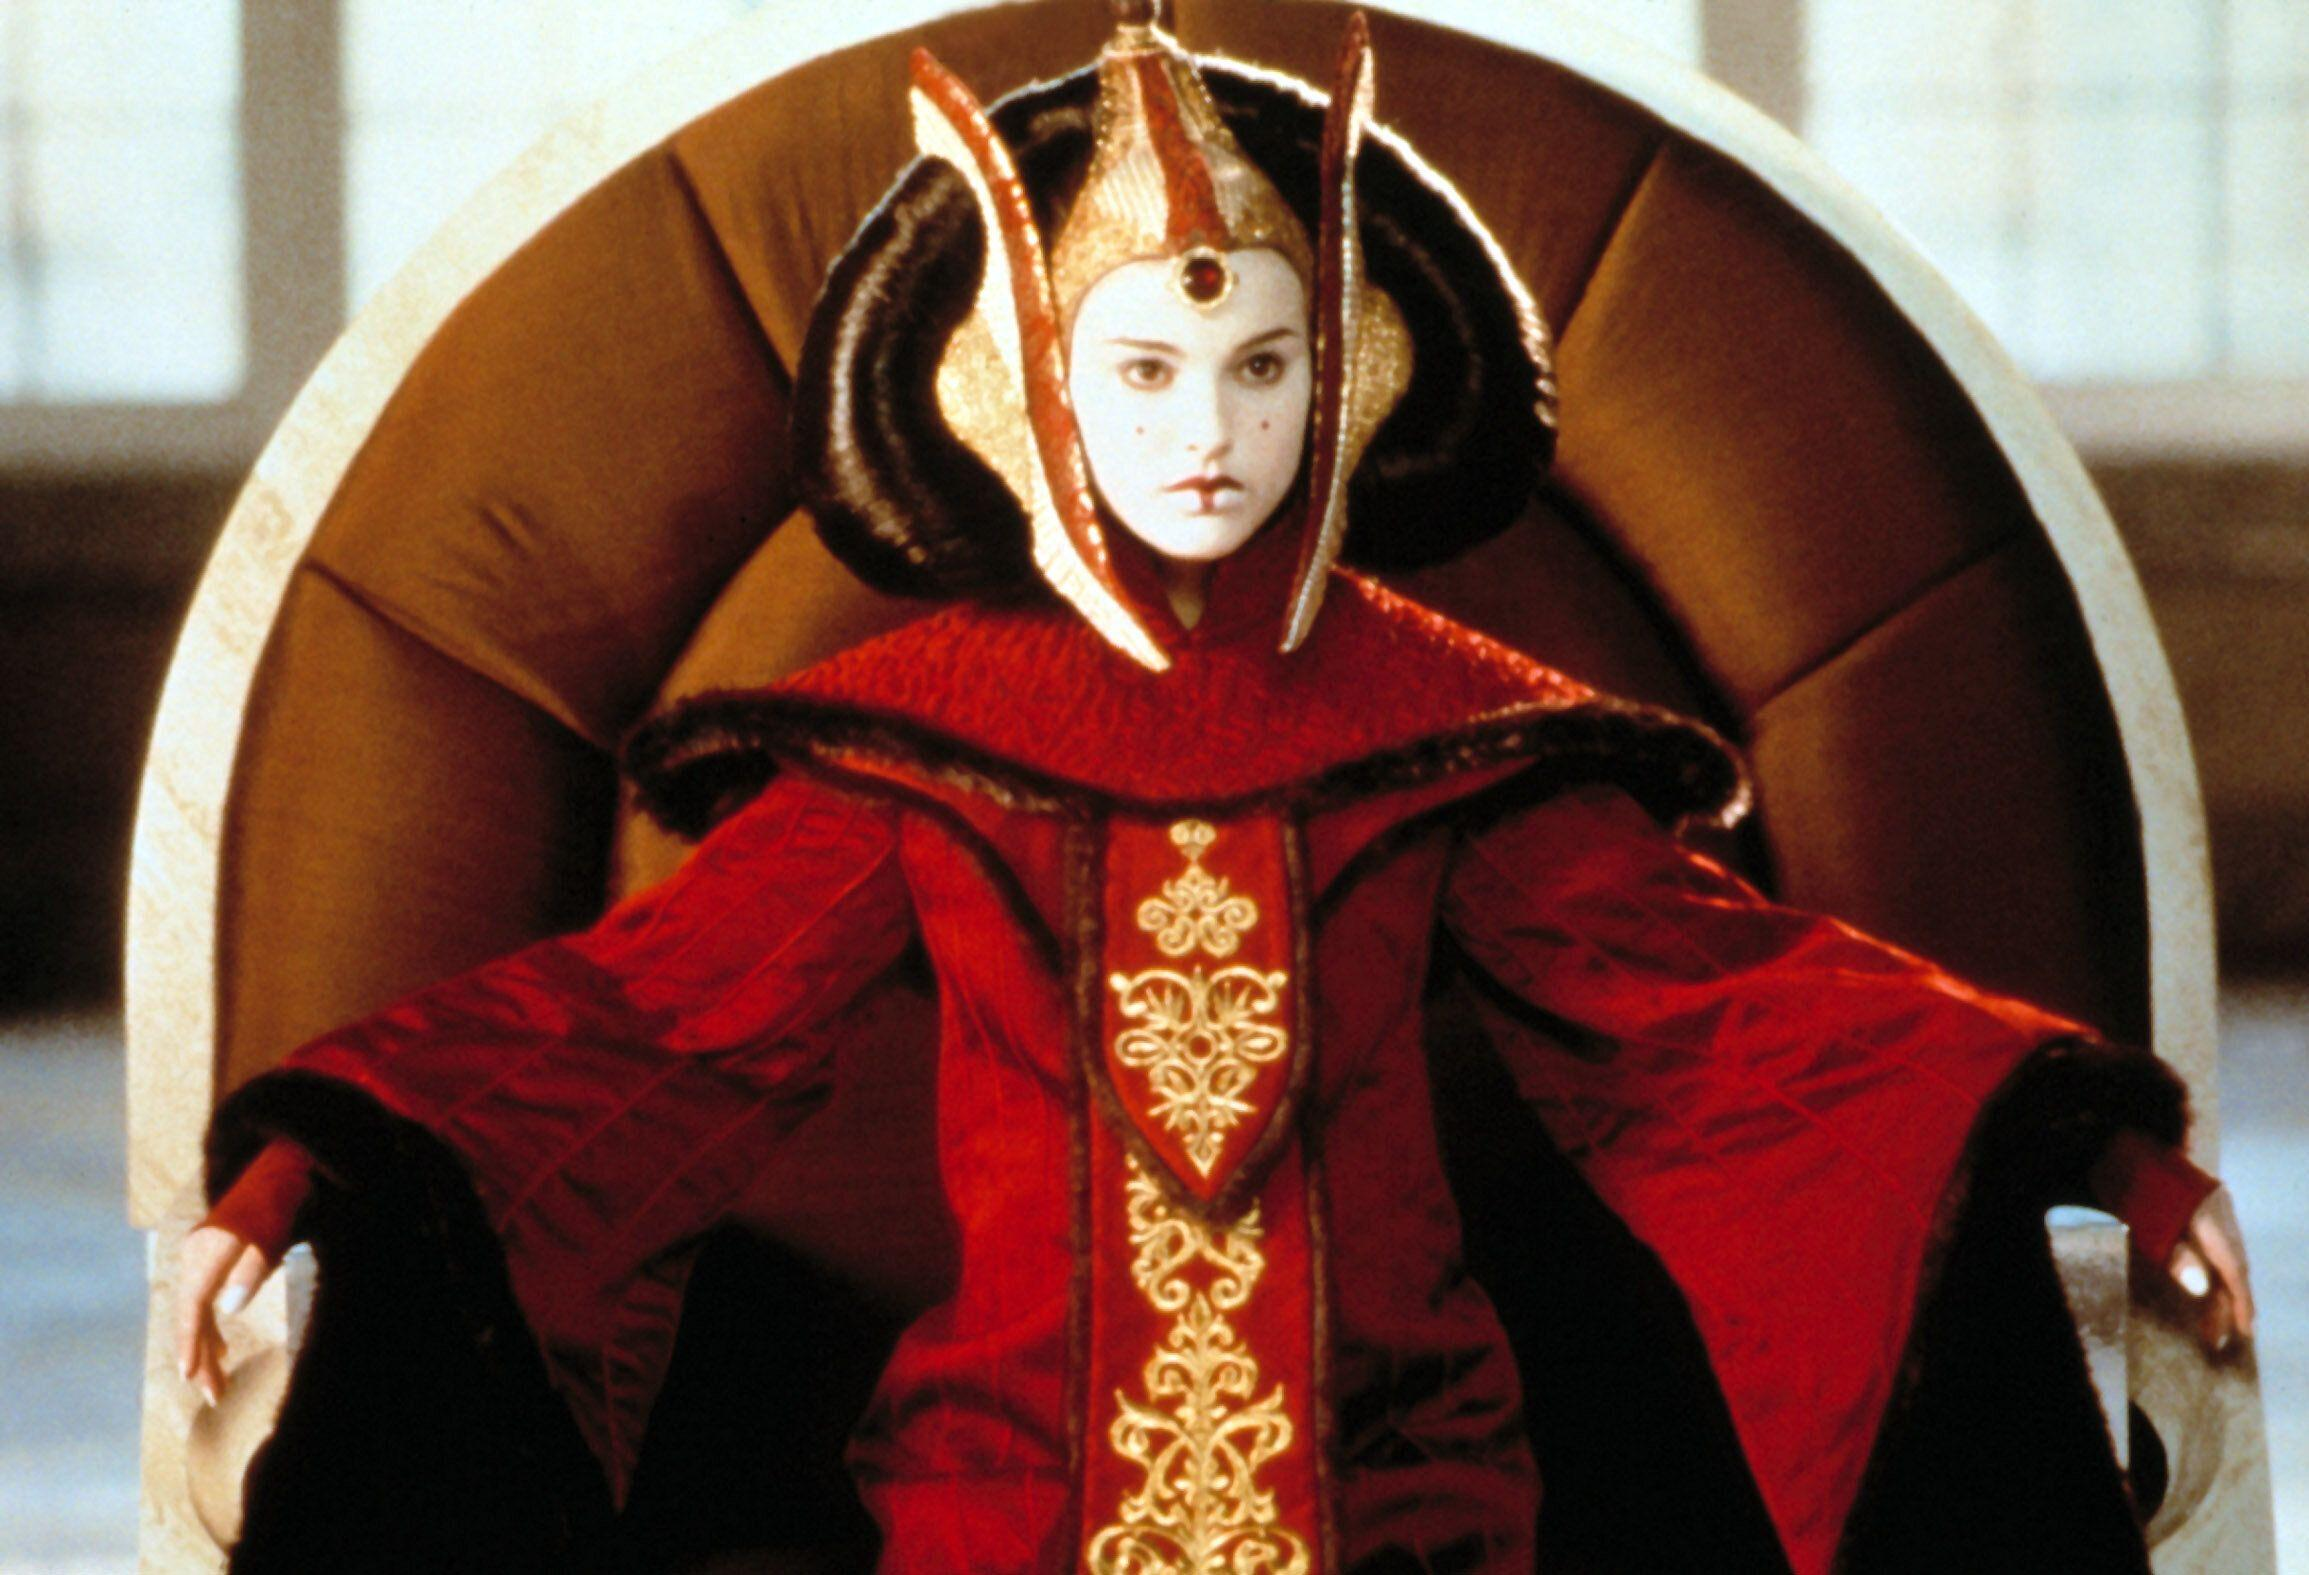 Natalie Portman is in full regal garb as Queen Amidala in 'The Phantom Menace' (Photo: ©Lucasfilm Ltd./courtesy Everett / Everett Collection)